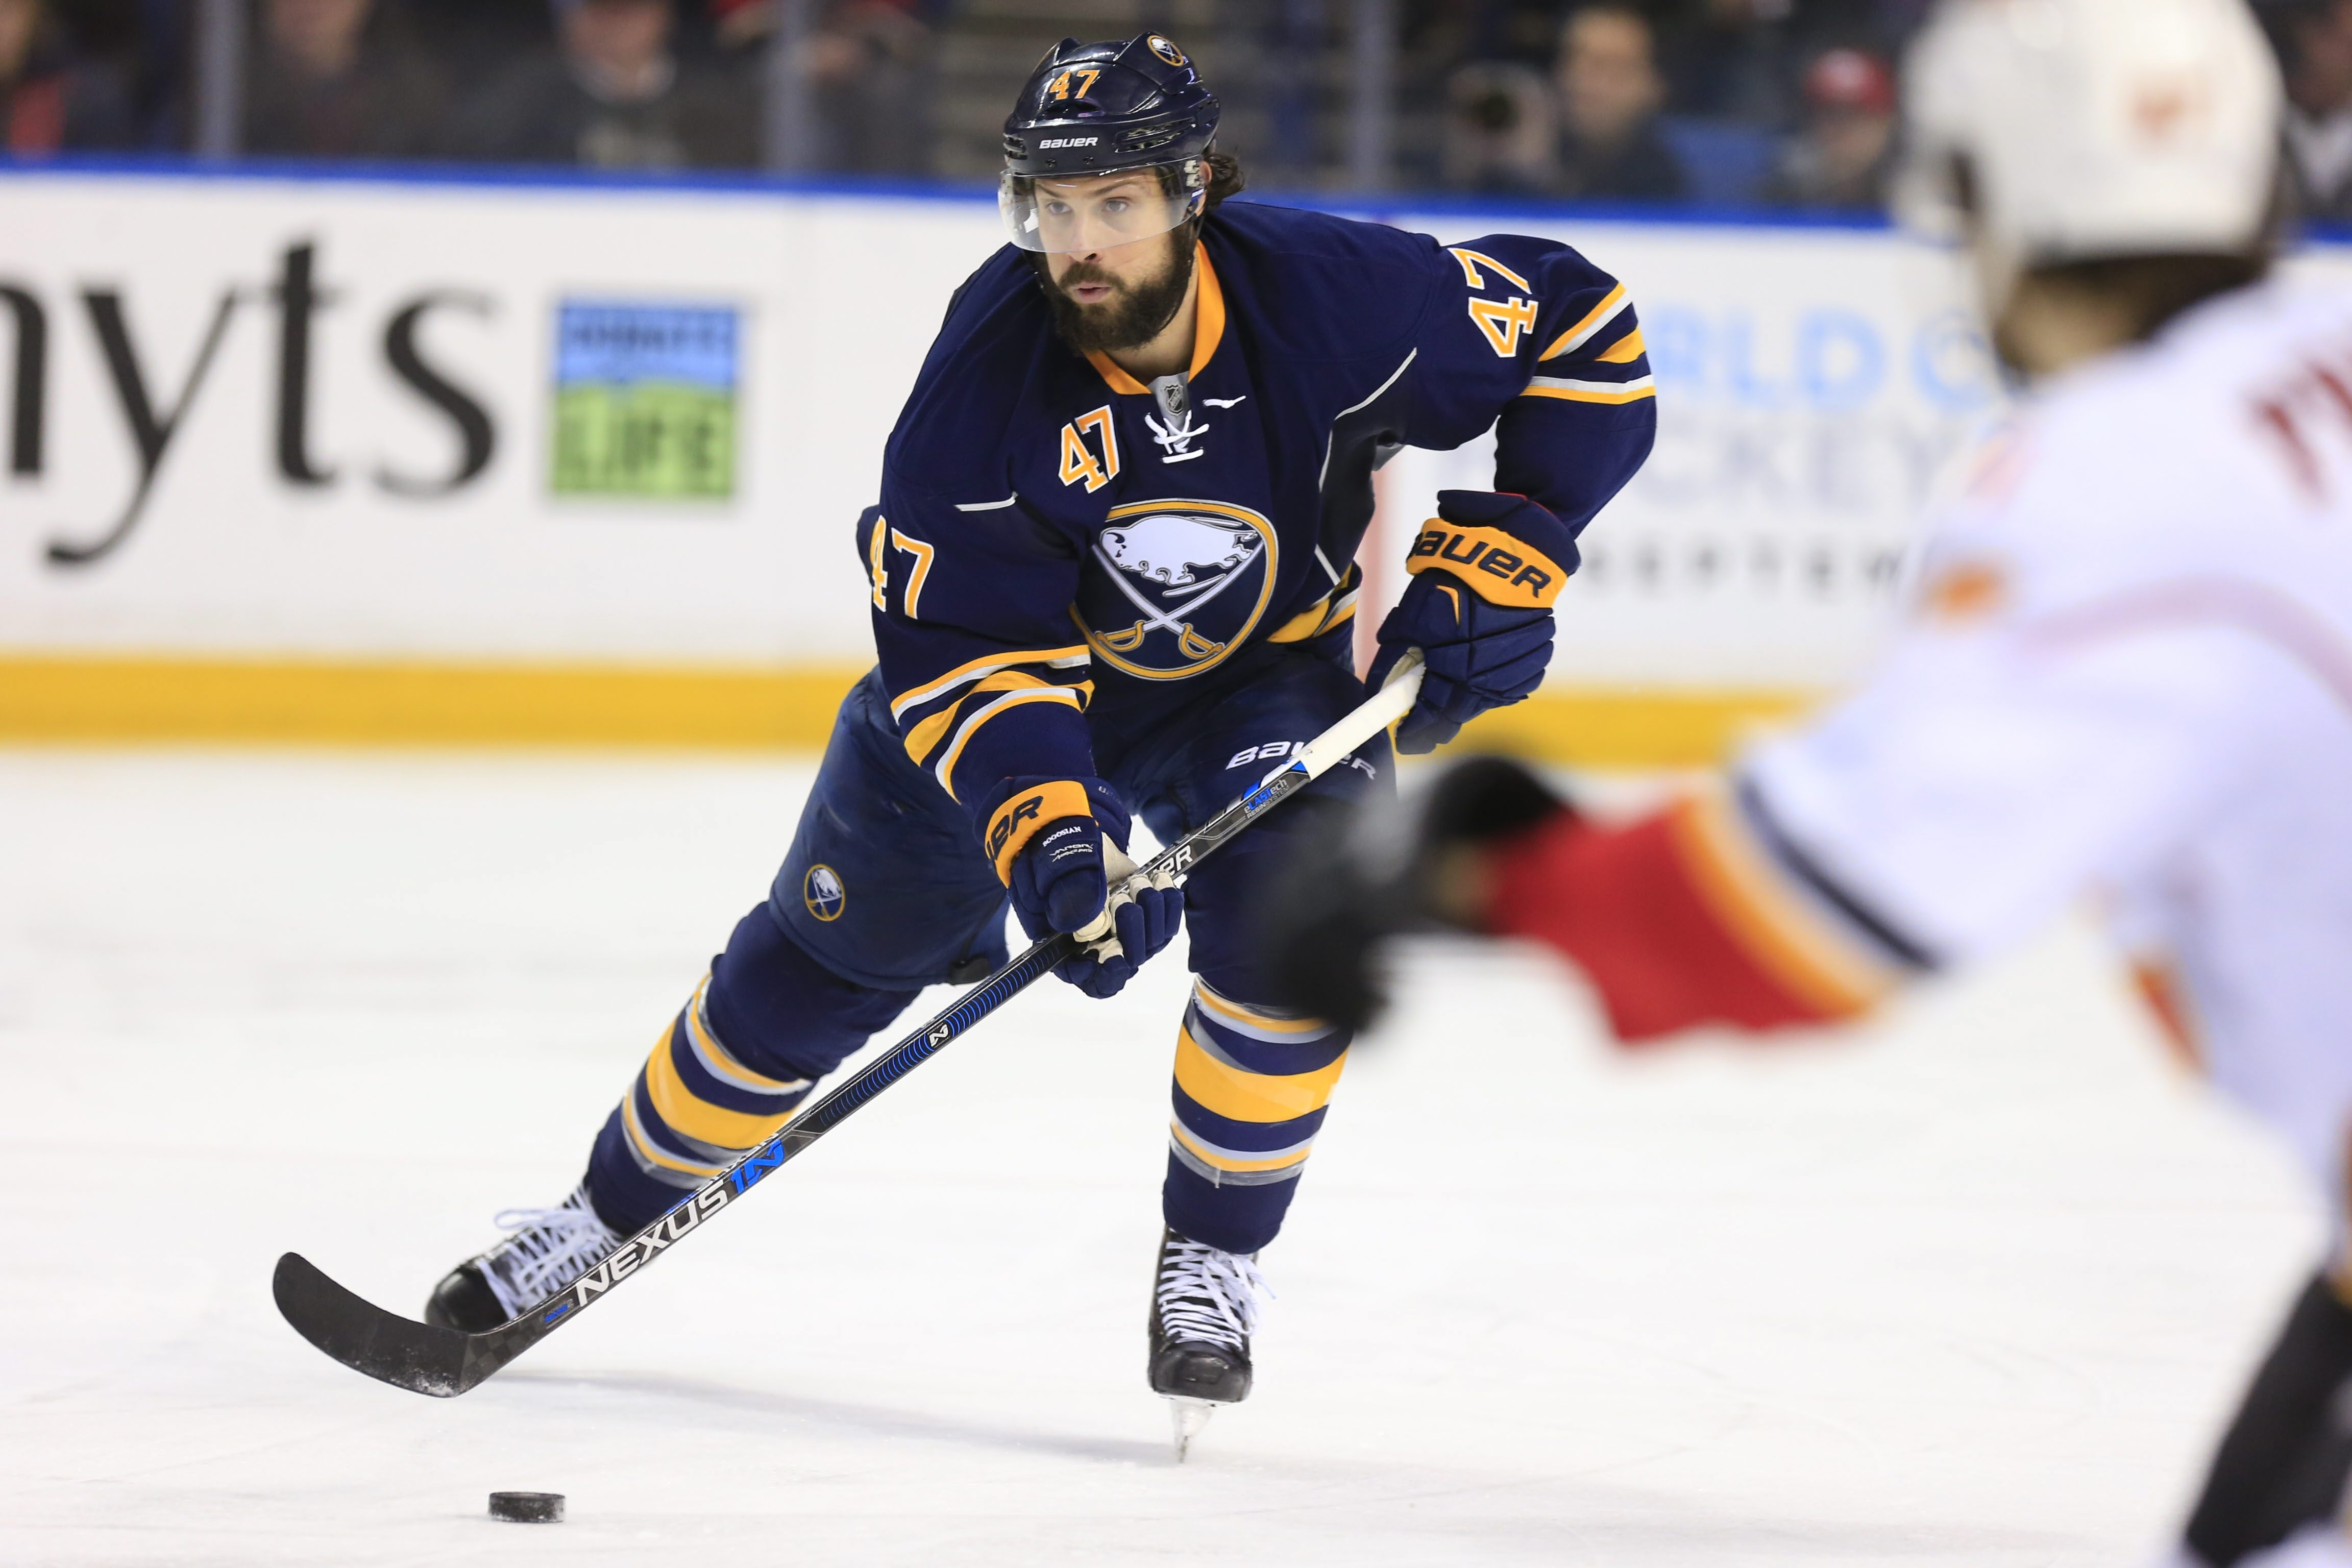 Playing with more confidence, defenseman Zach Bogosian has been an offensive threat lately for the Sabres.